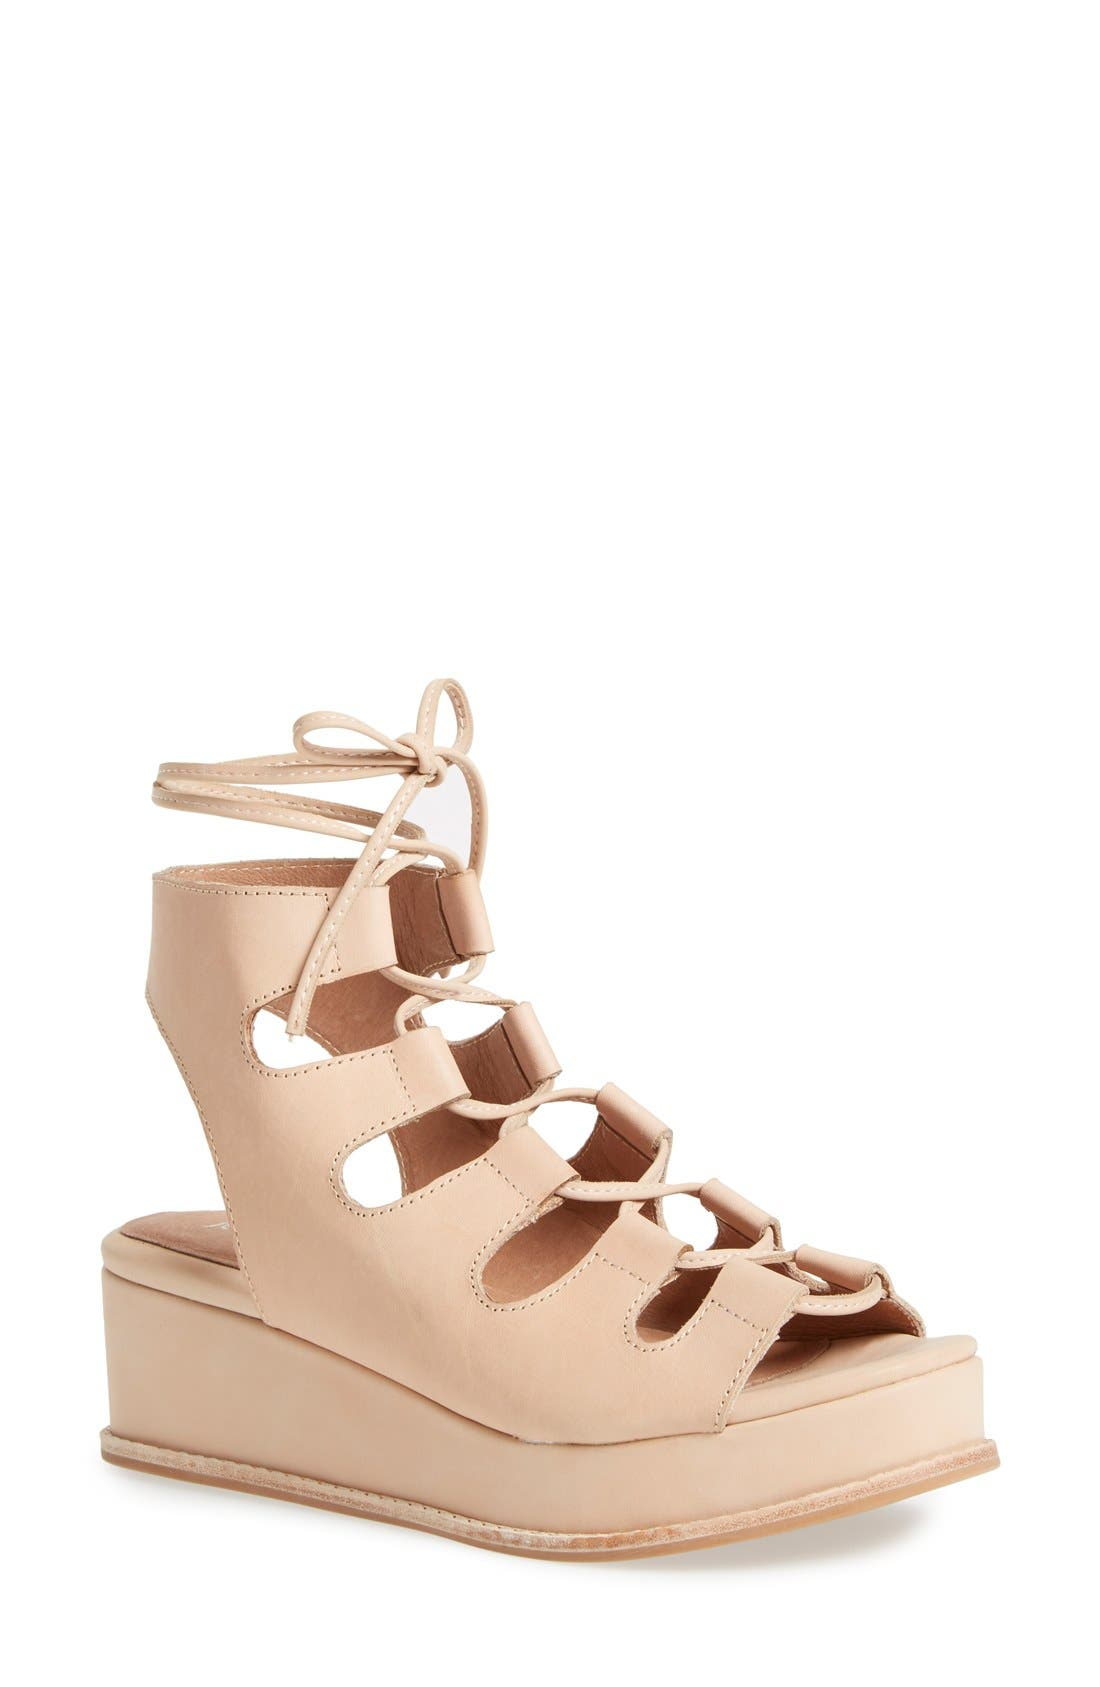 Alternate Image 1 Selected - Jeffrey Campbell 'Ximeno' Platform Ghillie Sandal (Women)